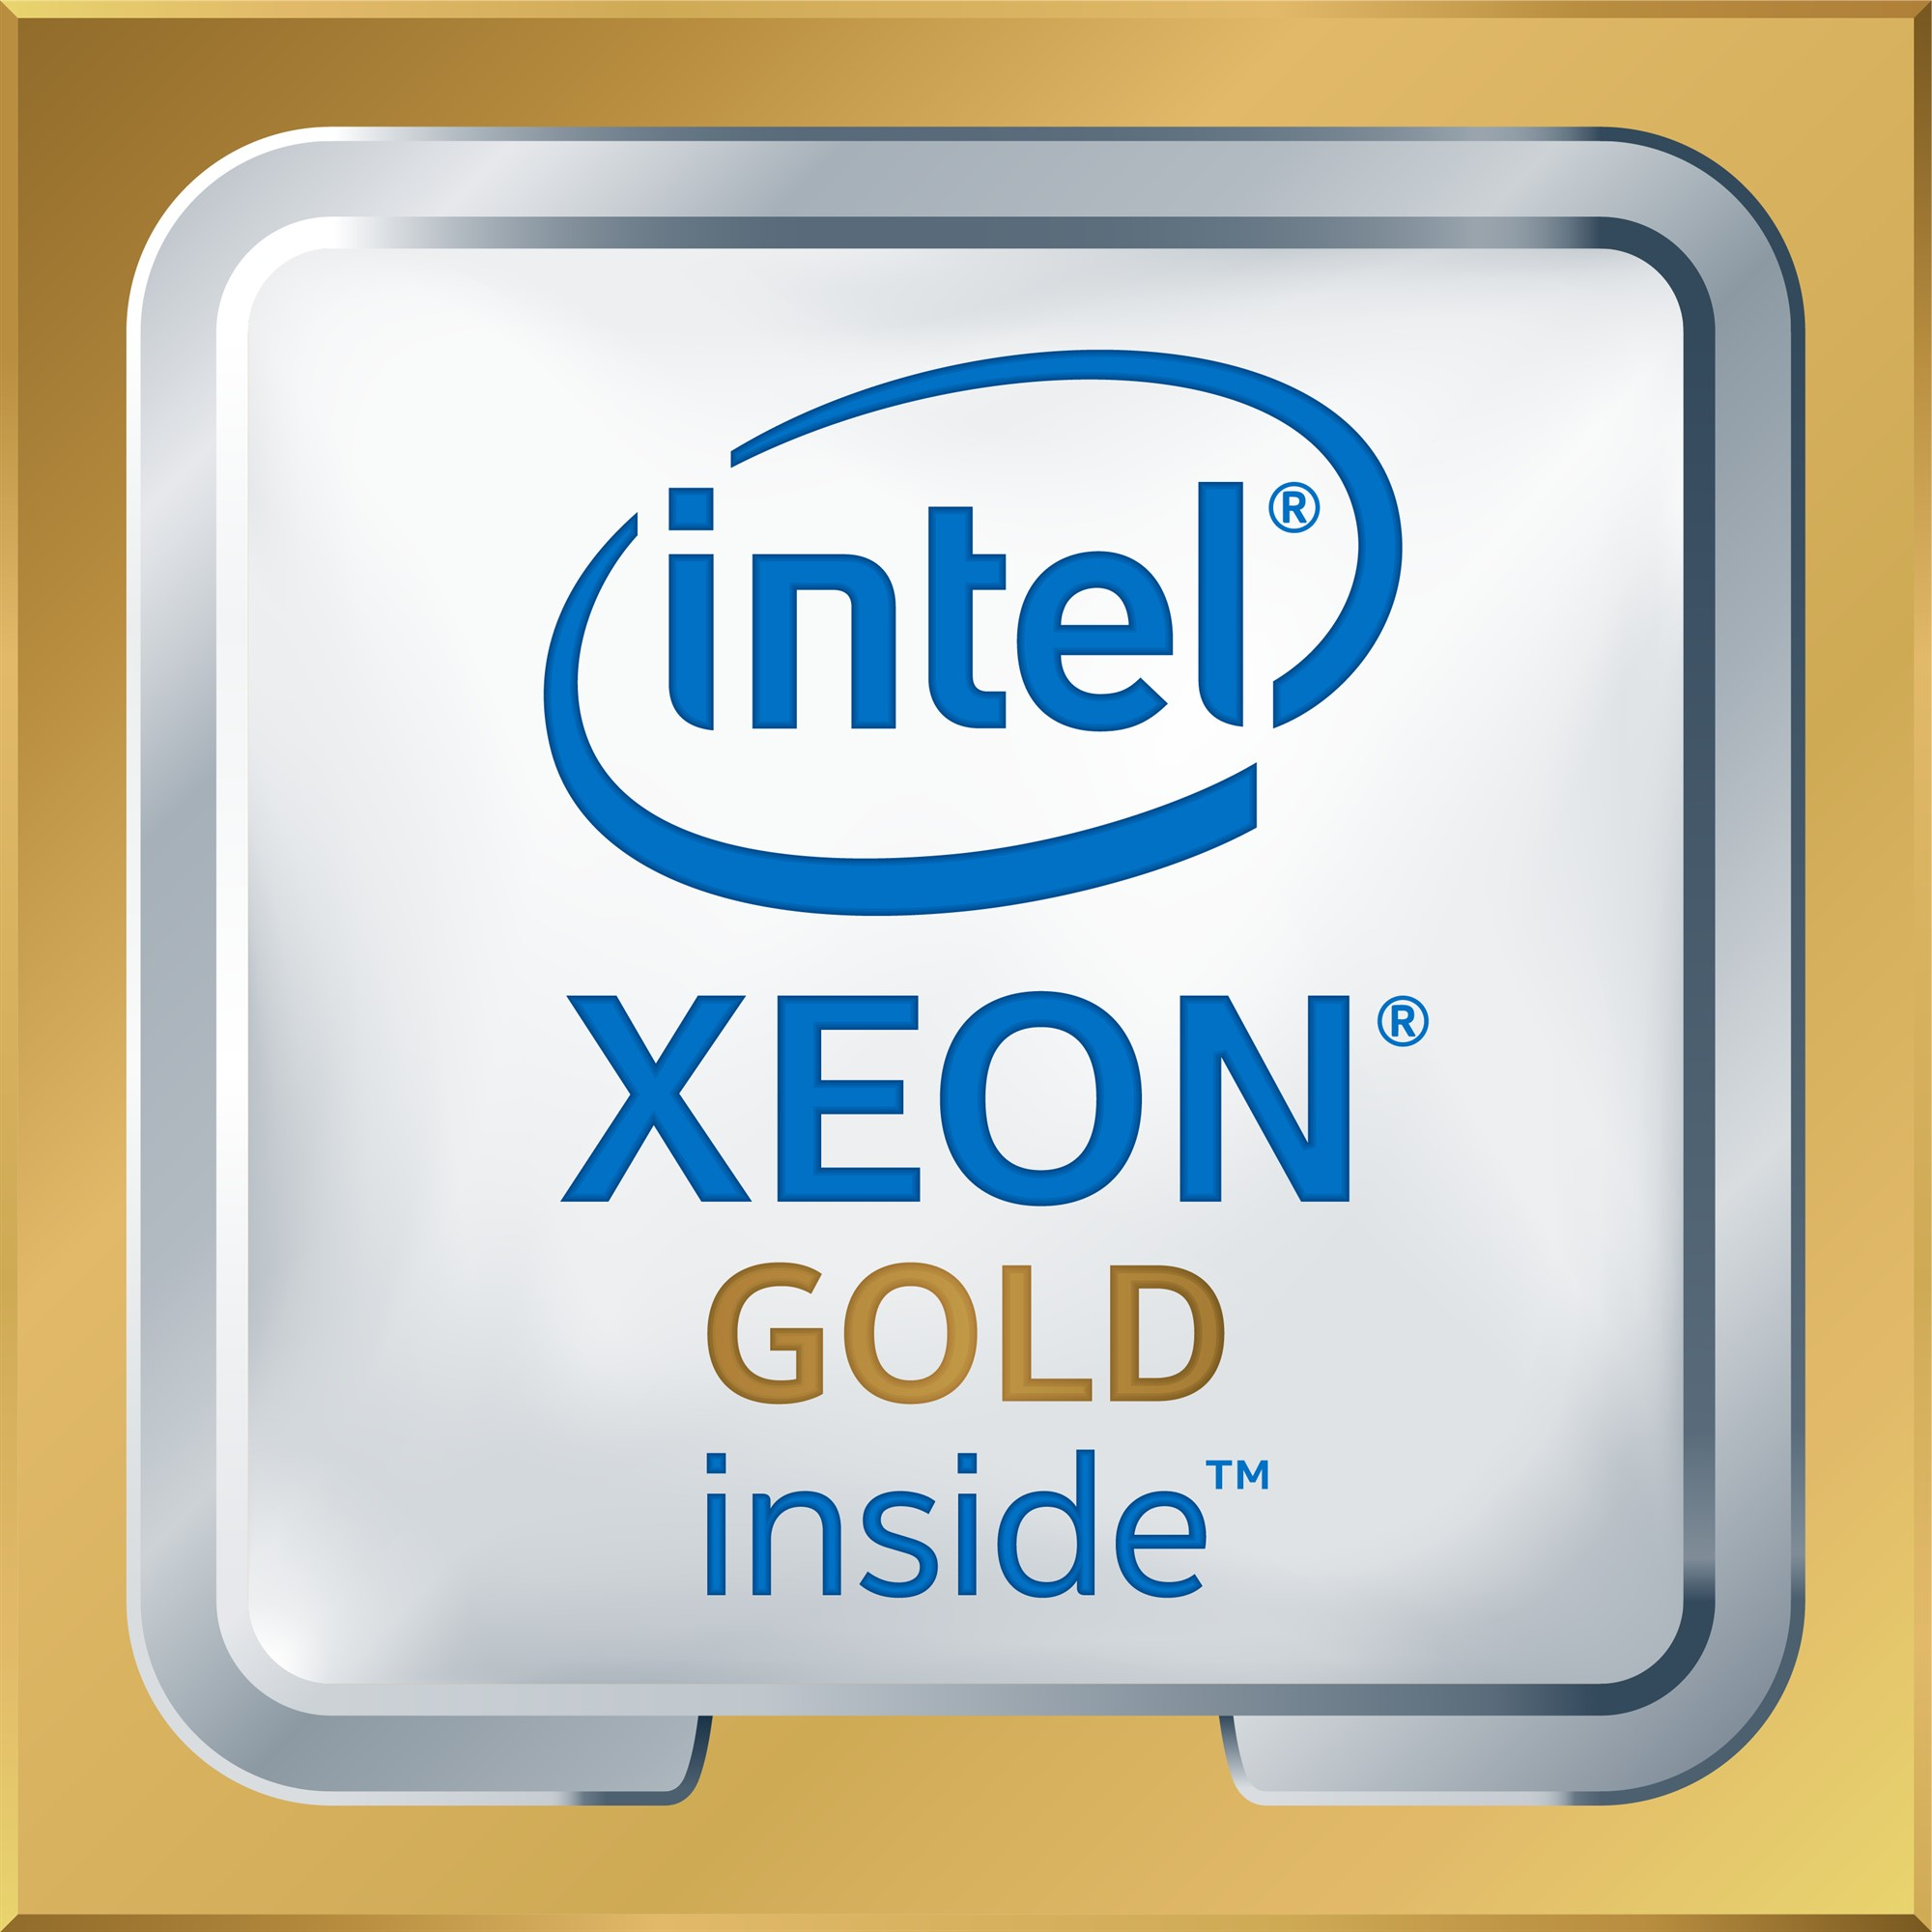 INTEL XEON GOLD 5122 PROCESSOR (16.5M CACHE, 3.60 GHZ) 3.6GHZ 16.5MB L3 BOX